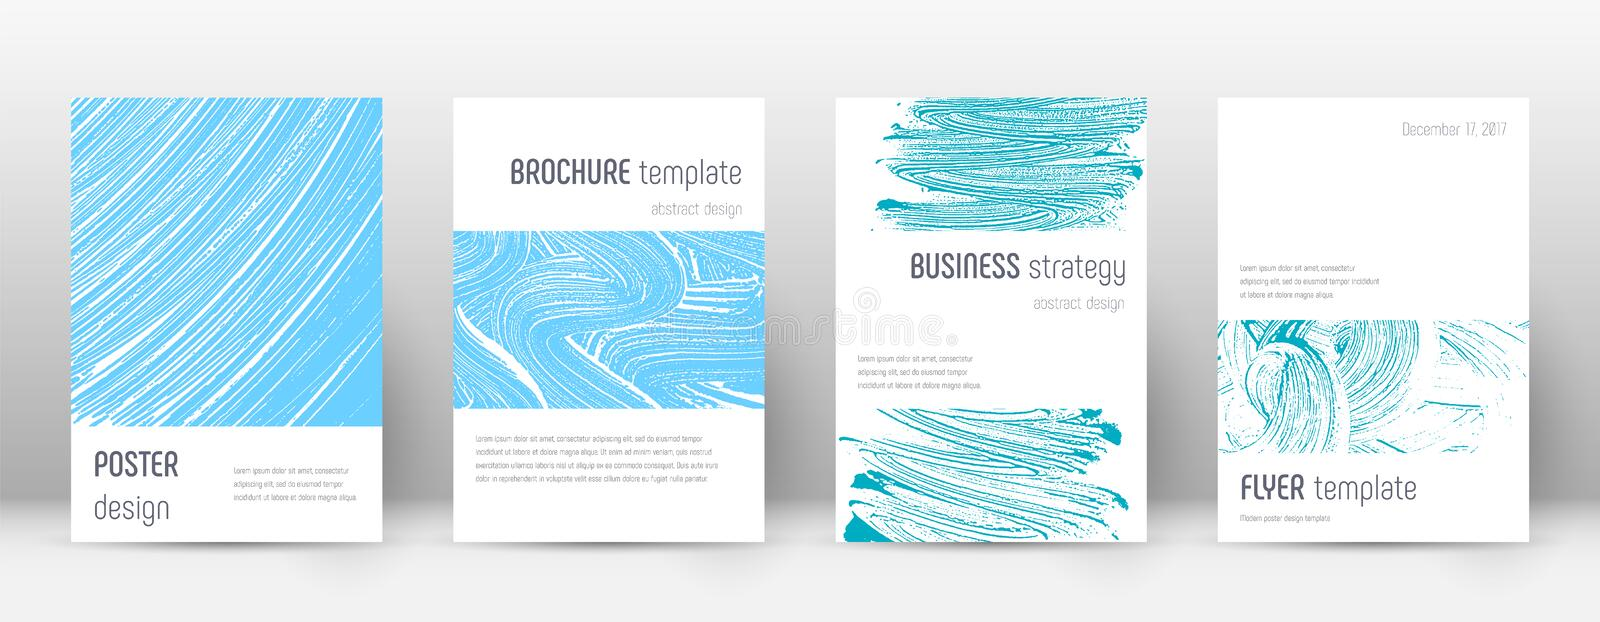 Cover page design template. Minimalistic brochure. Layout. Classy trendy abstract cover page. Pink and blue grunge texture background. Ideal poster vector illustration